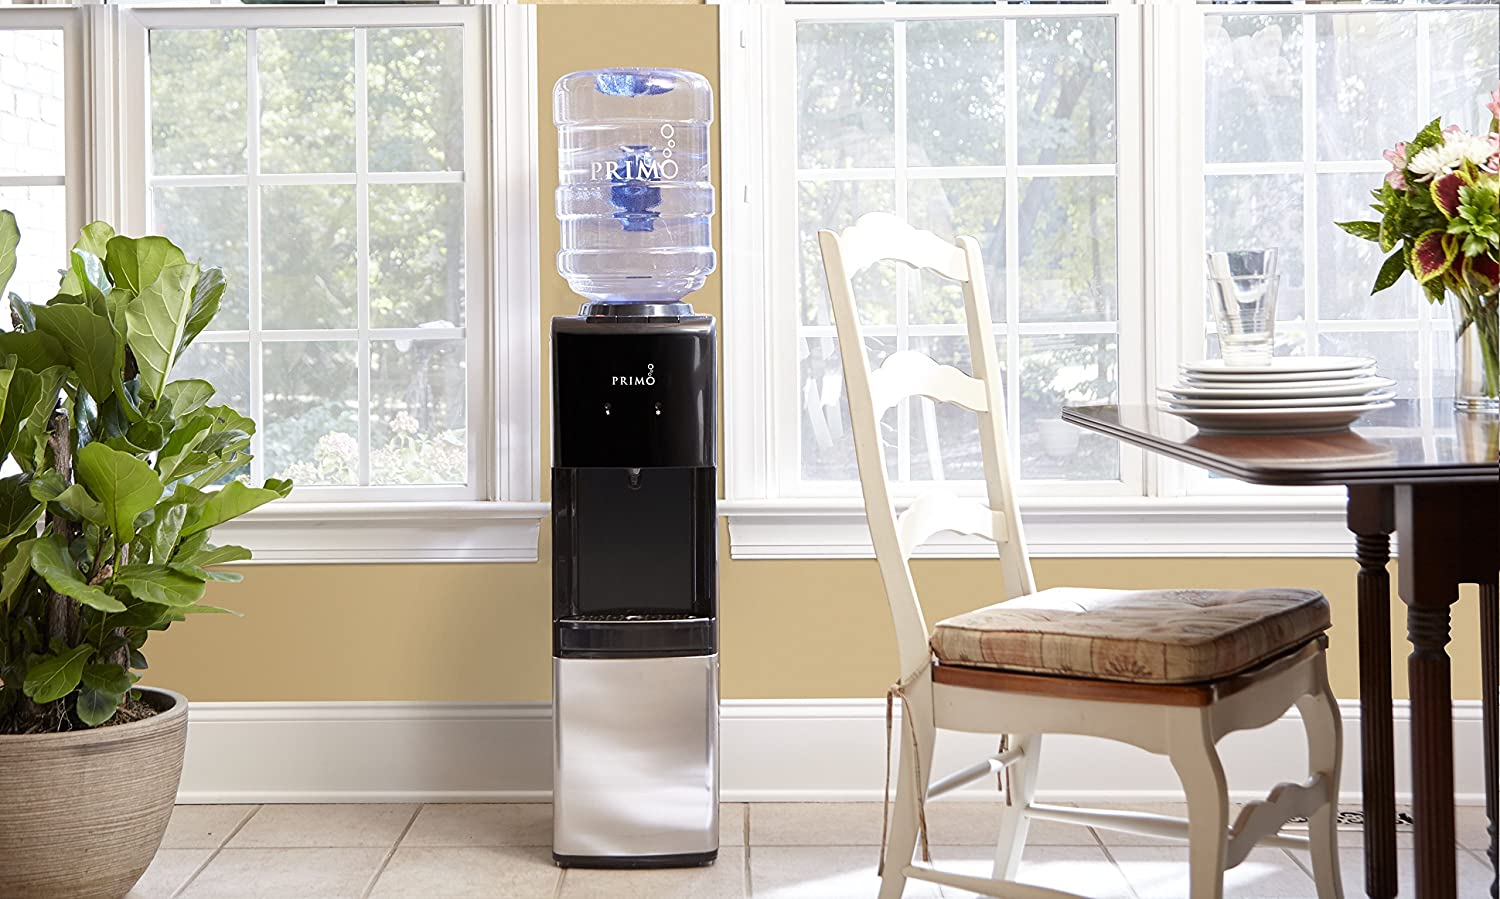 Primo Stainless Steel 1 Spout Top Load Hot, Cold and Cool Water Cooler Dispenser Primo Water Corporation 601087